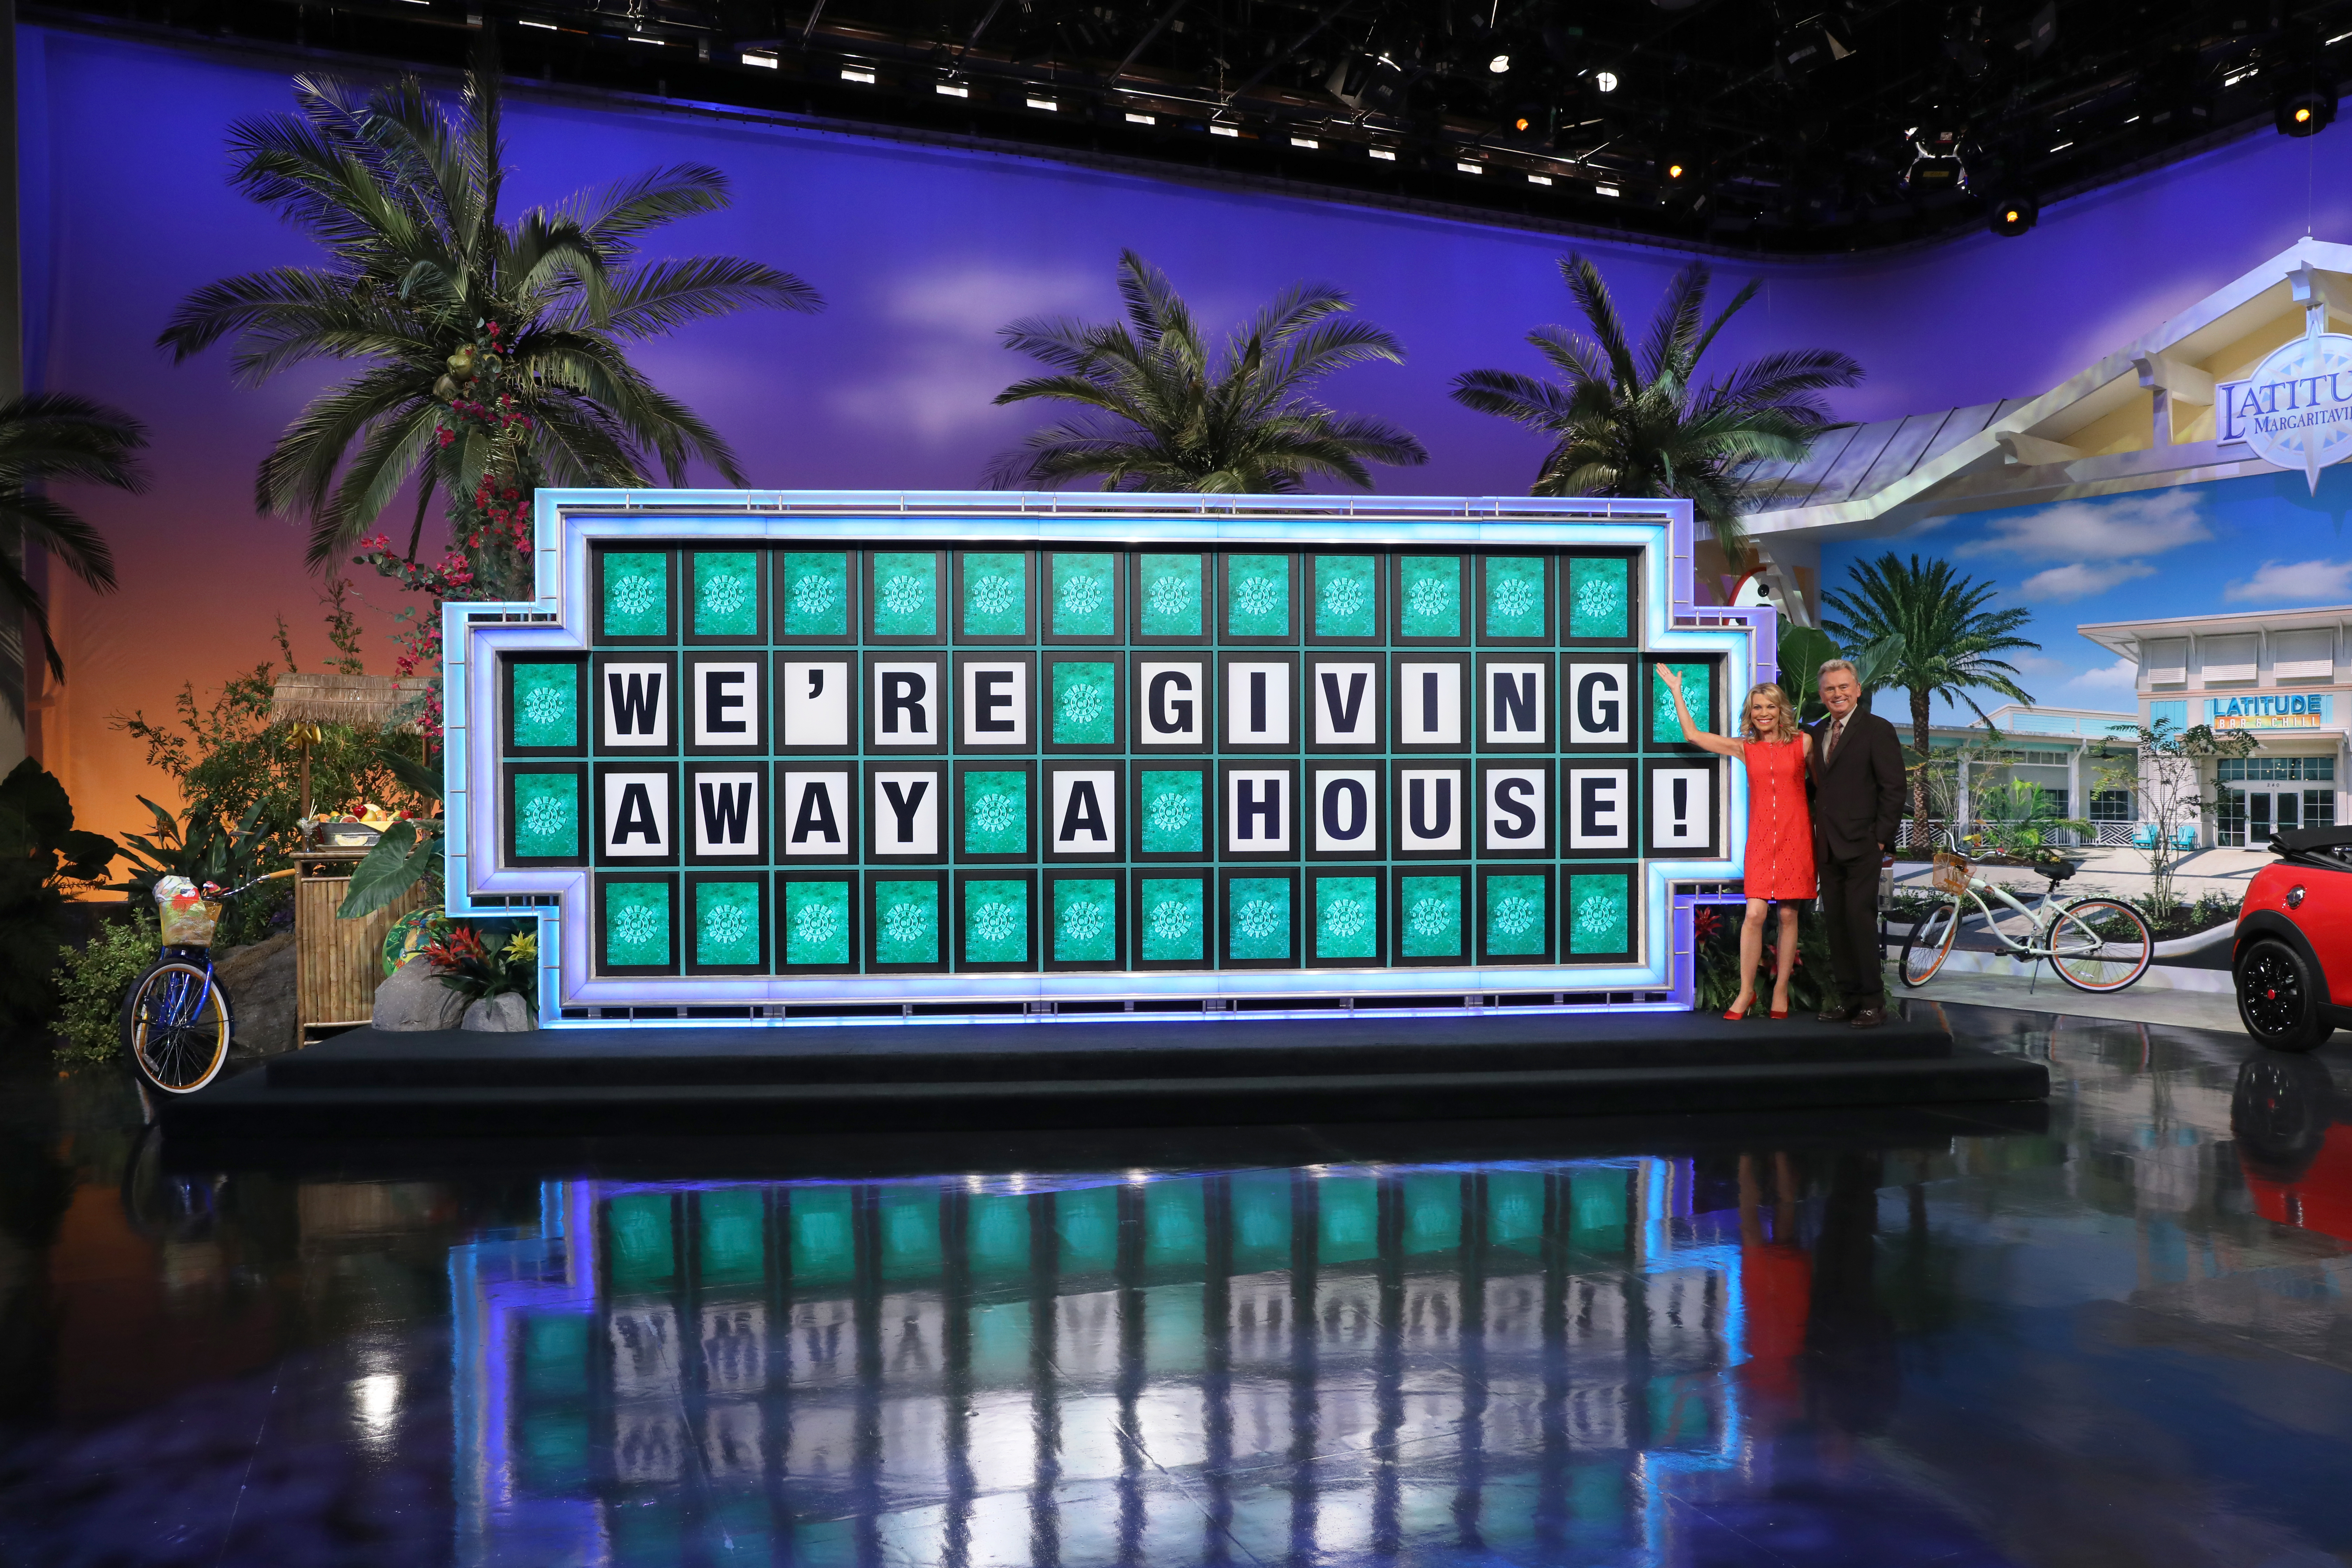 WHEEL OF FORTUNE TO GIVE AWAY ANOTHER NEW HOME IN LATITUDE MARGARITAVILLE